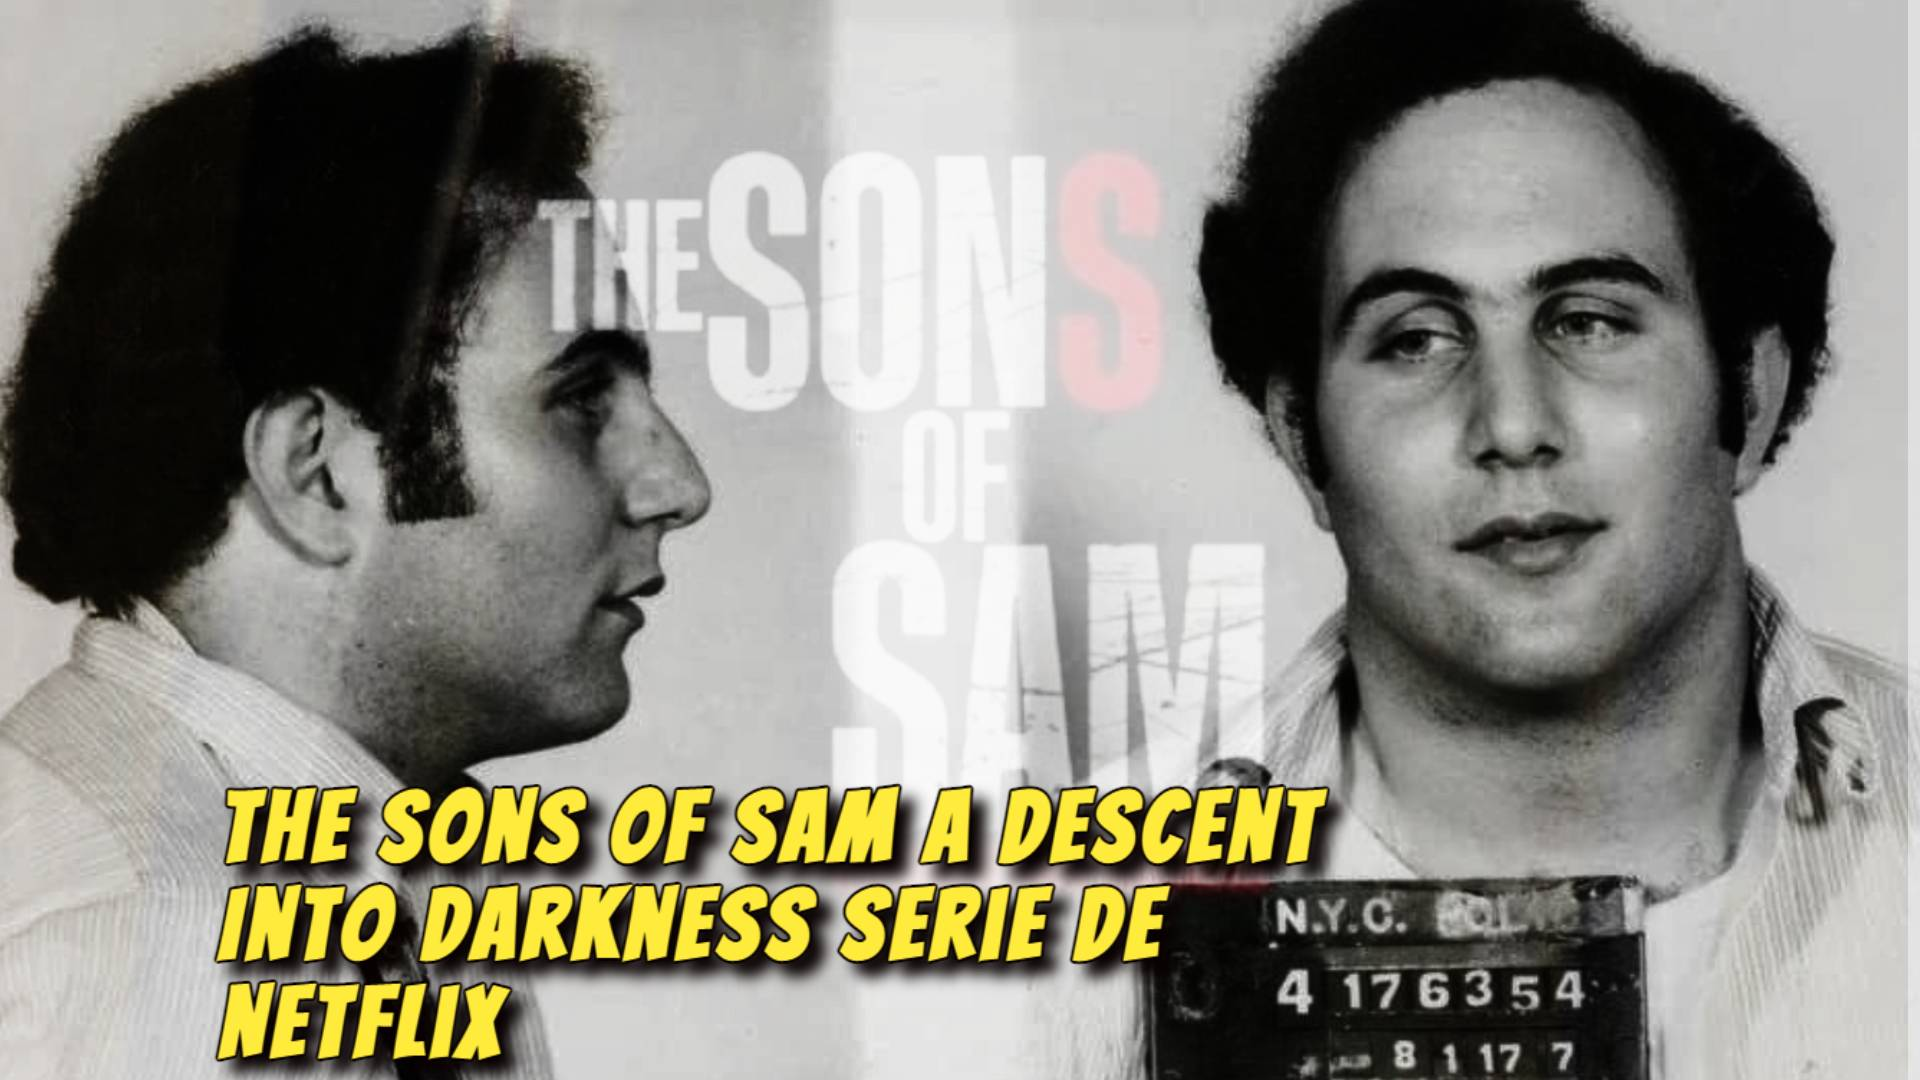 The Sons of Sam A Descent Into Darkness Serie De Netflix